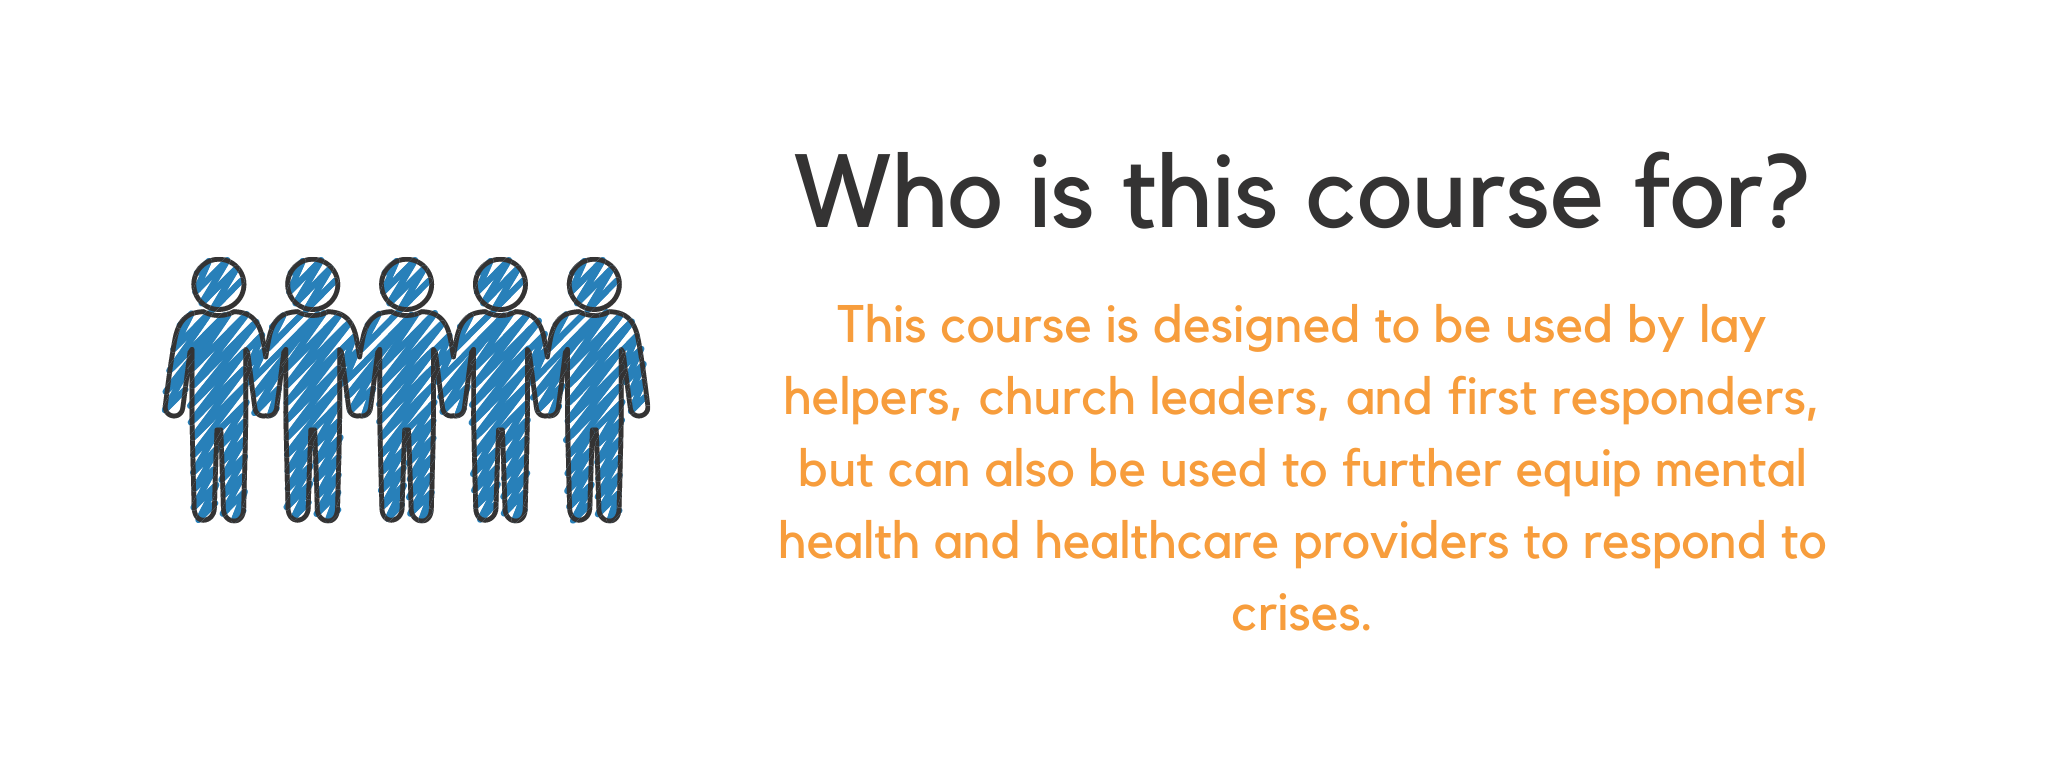 This course is designed to be used by lay helpers, church leaders, and first responders, but can also be used to further equip mental health and healthcare providers to respond to crises.